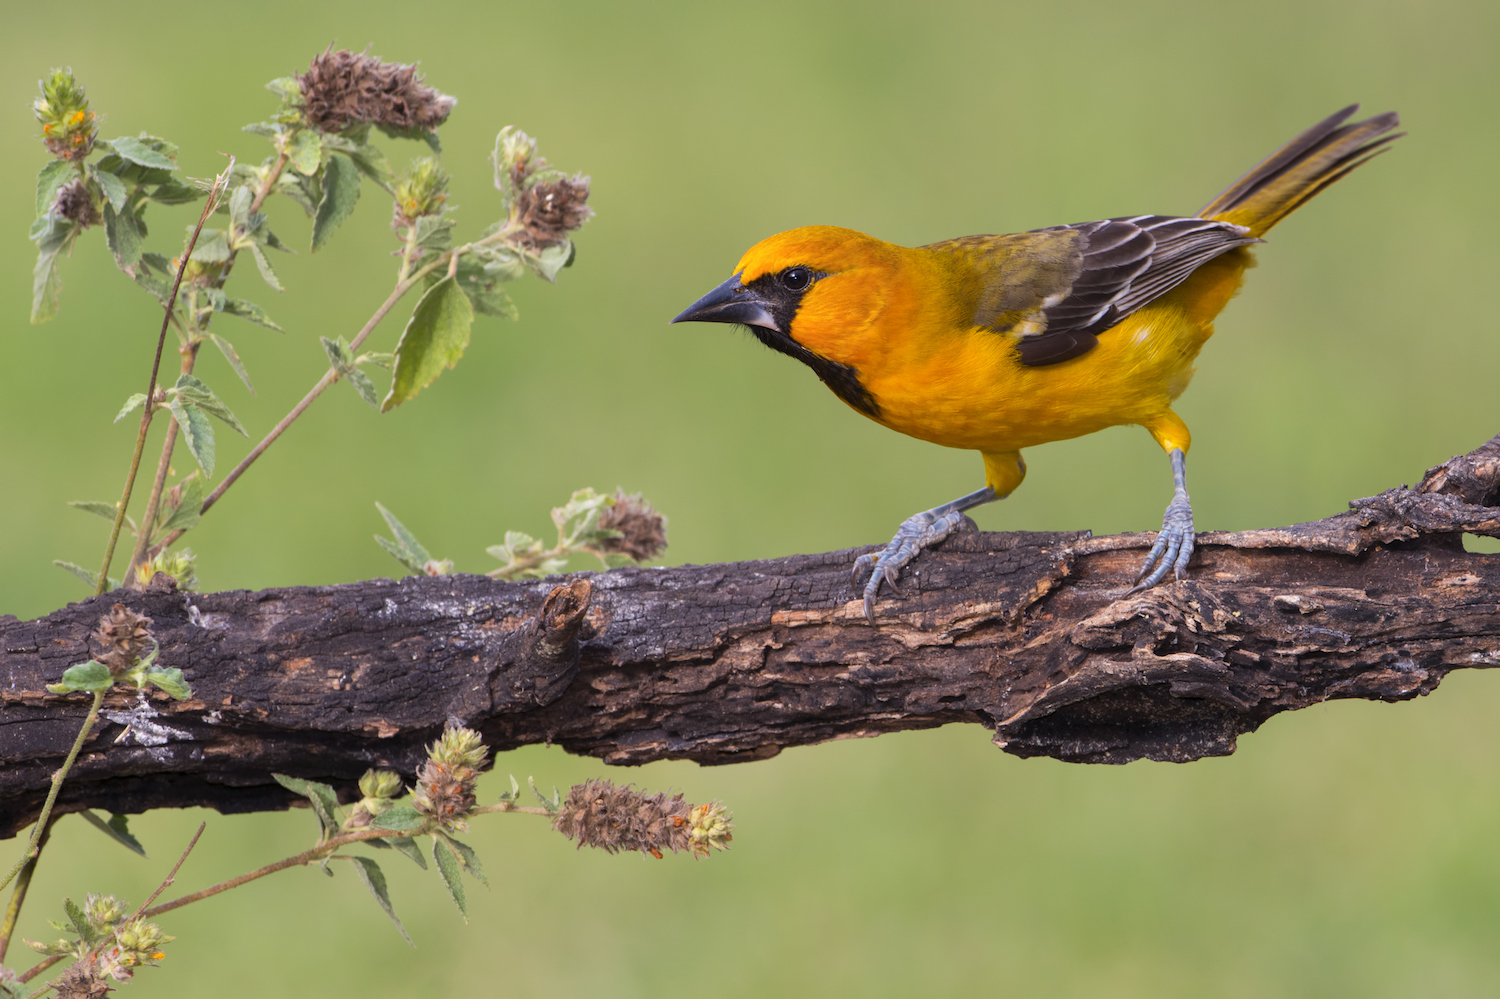 Border wall threatens birding sites; scientists speak out